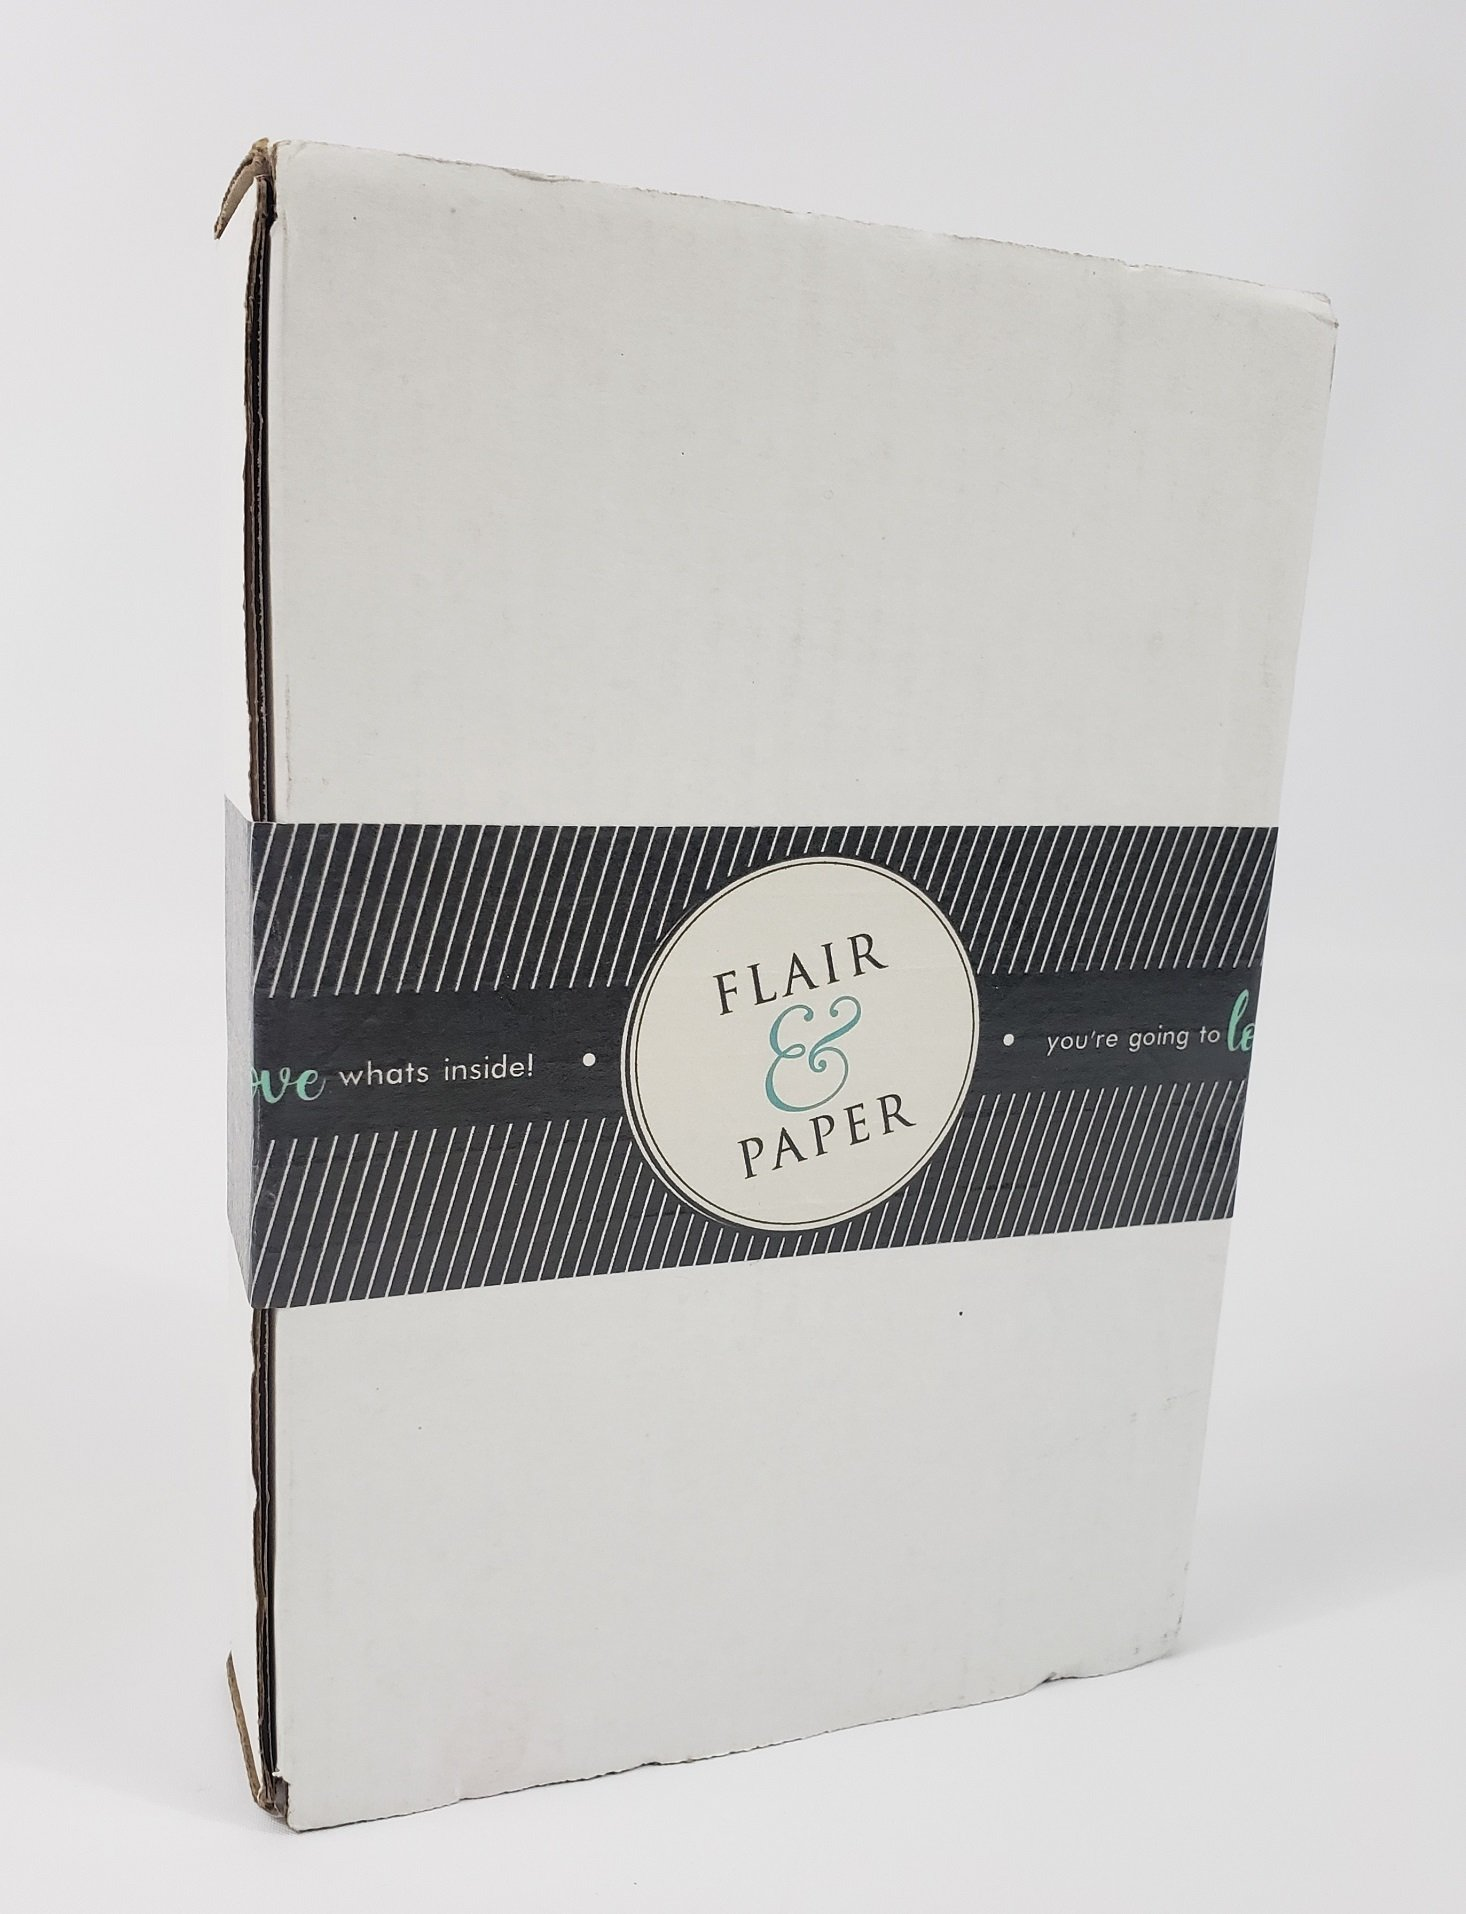 Flair & Paper Stationery Review + Coupon – March 2019